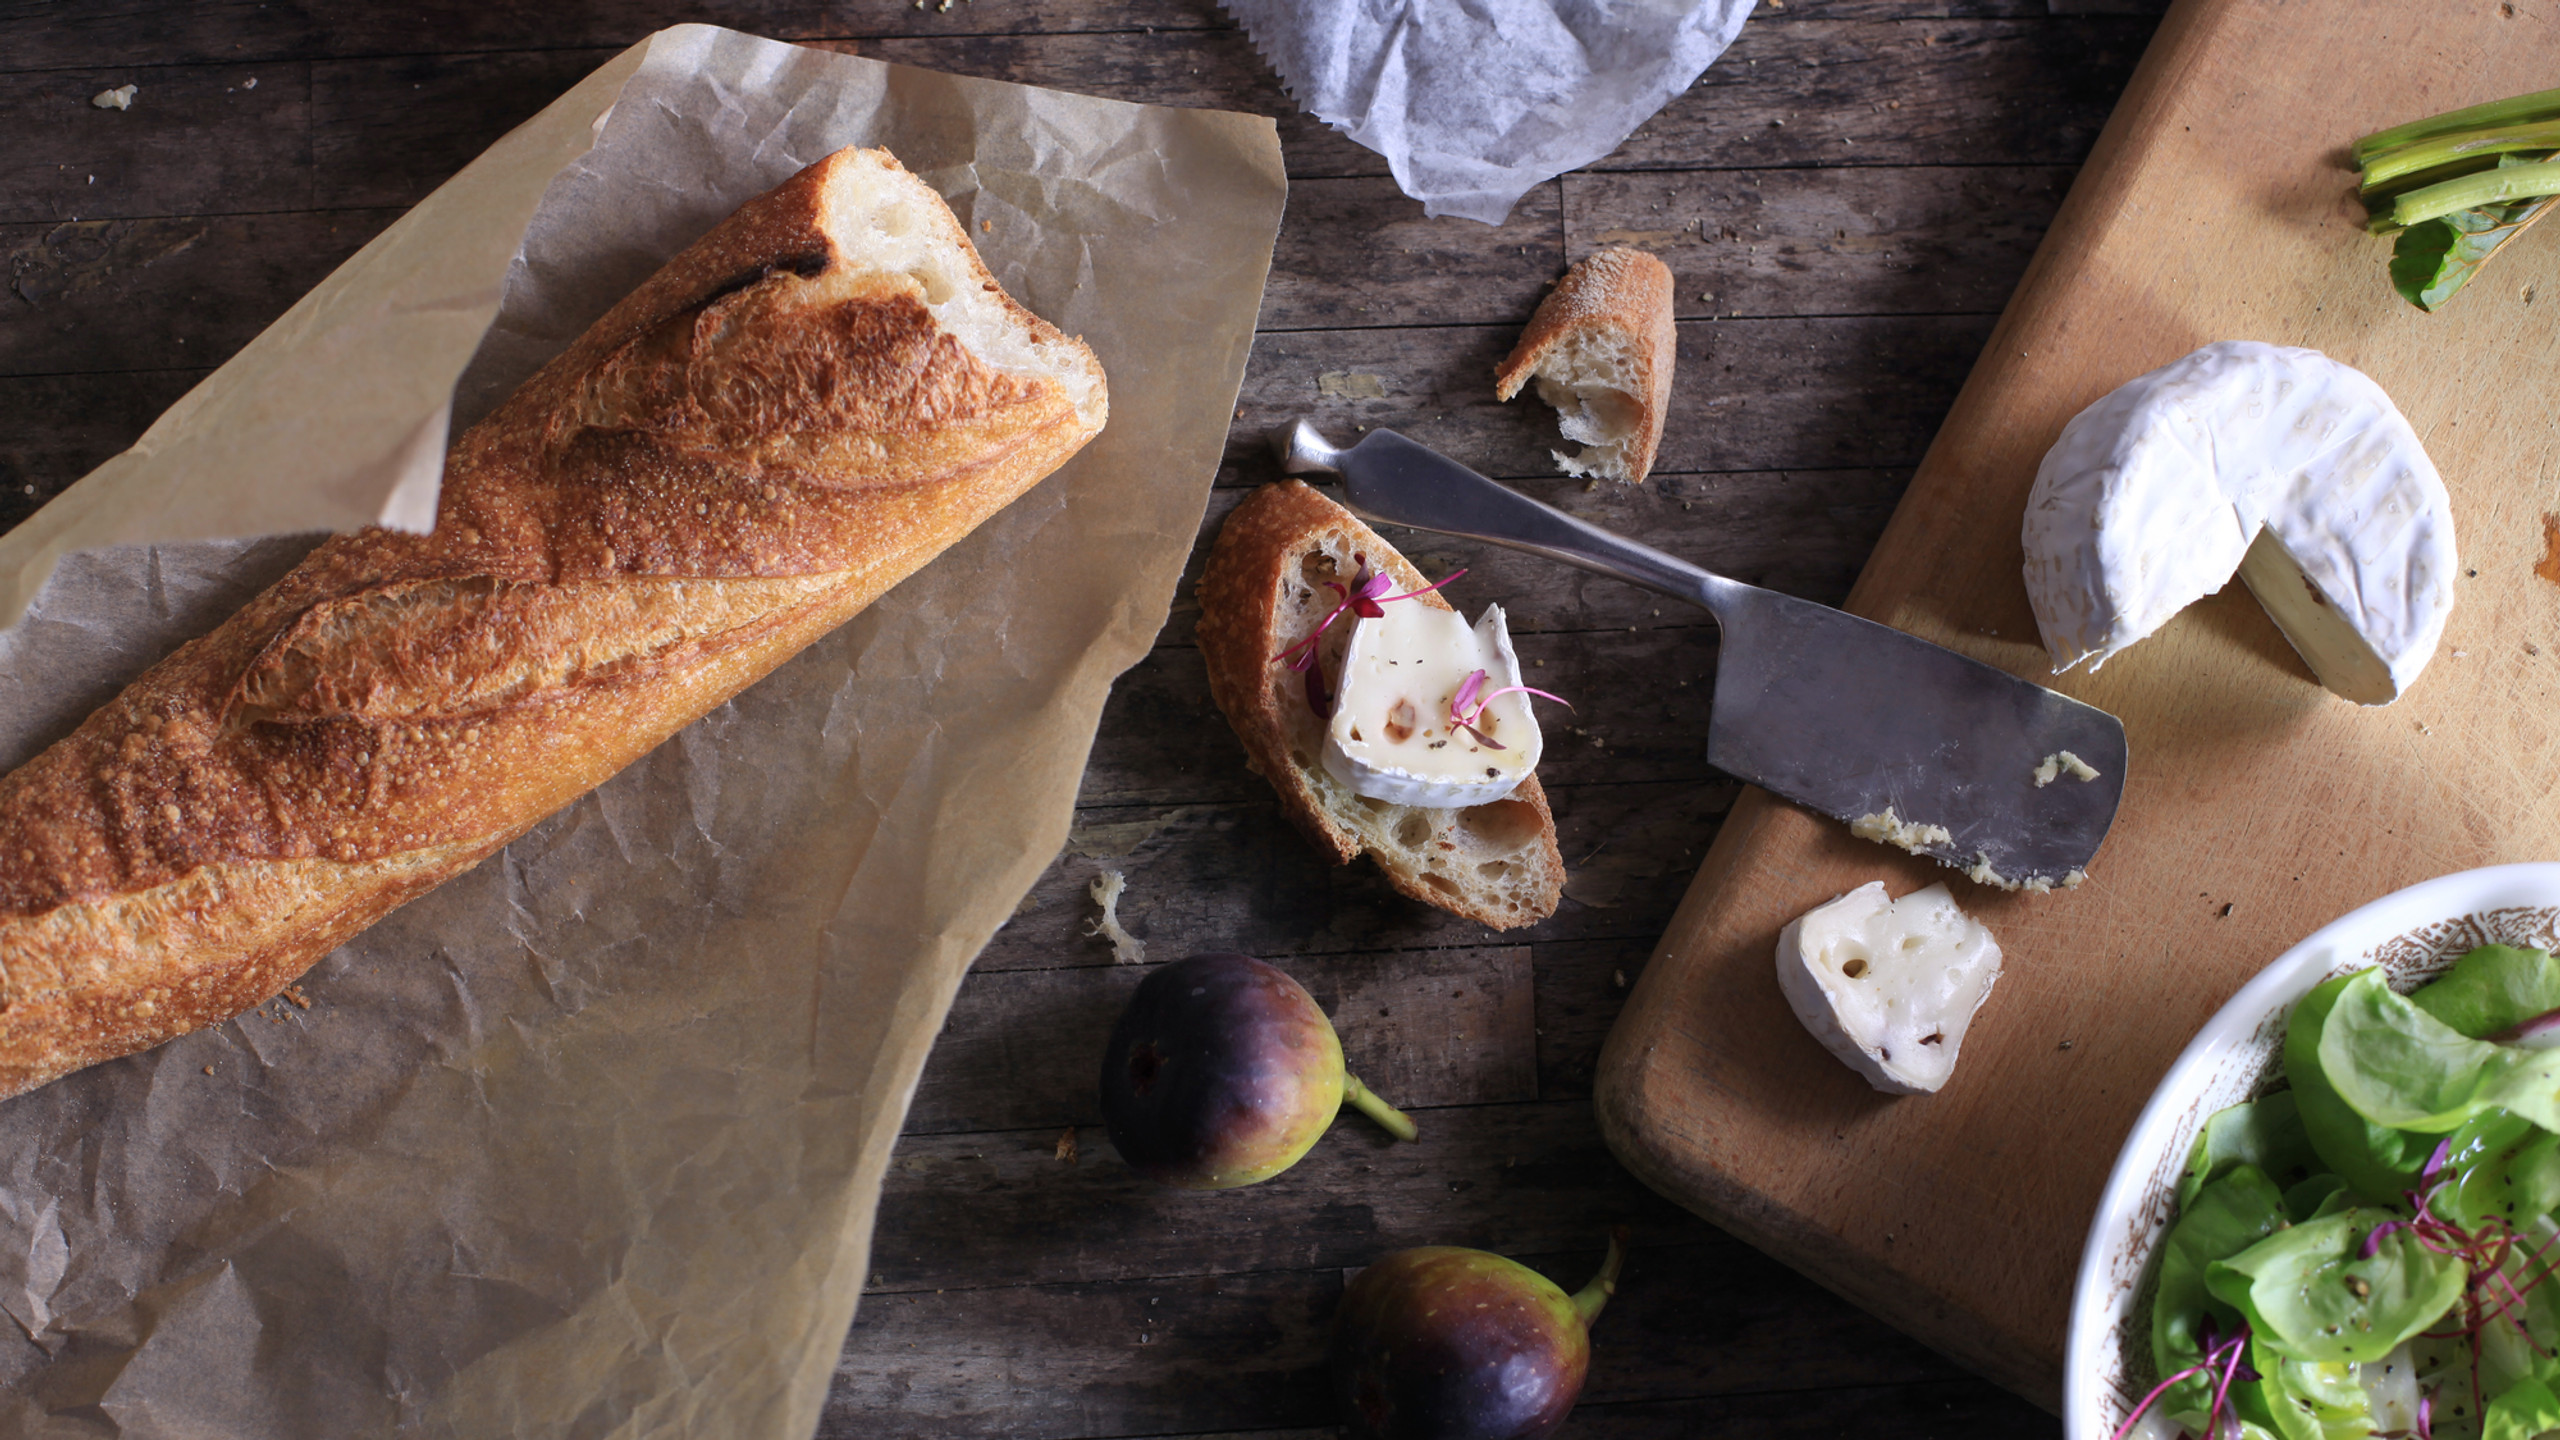 Baguette with Cheeses